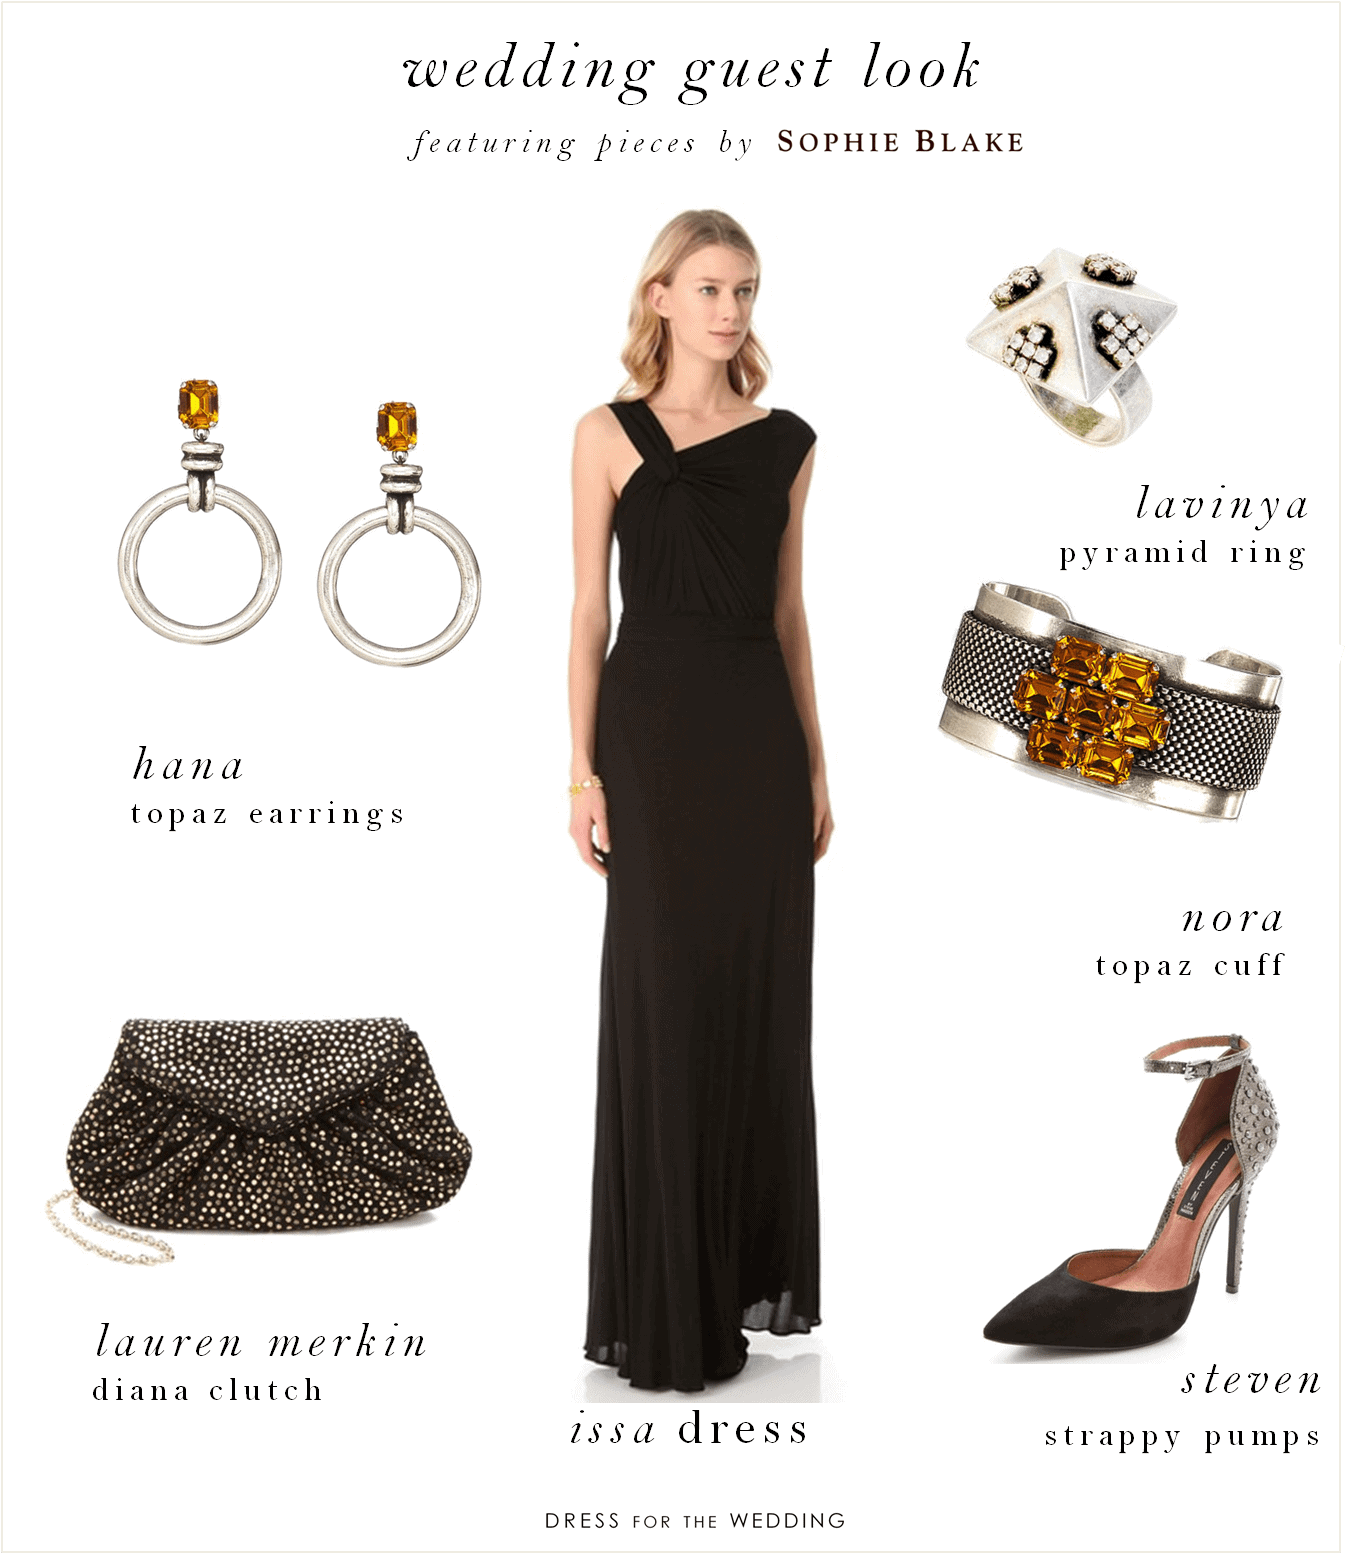 Black dress to wear to a wedding - Accessories By Sophie Blake With A Long Black Gown